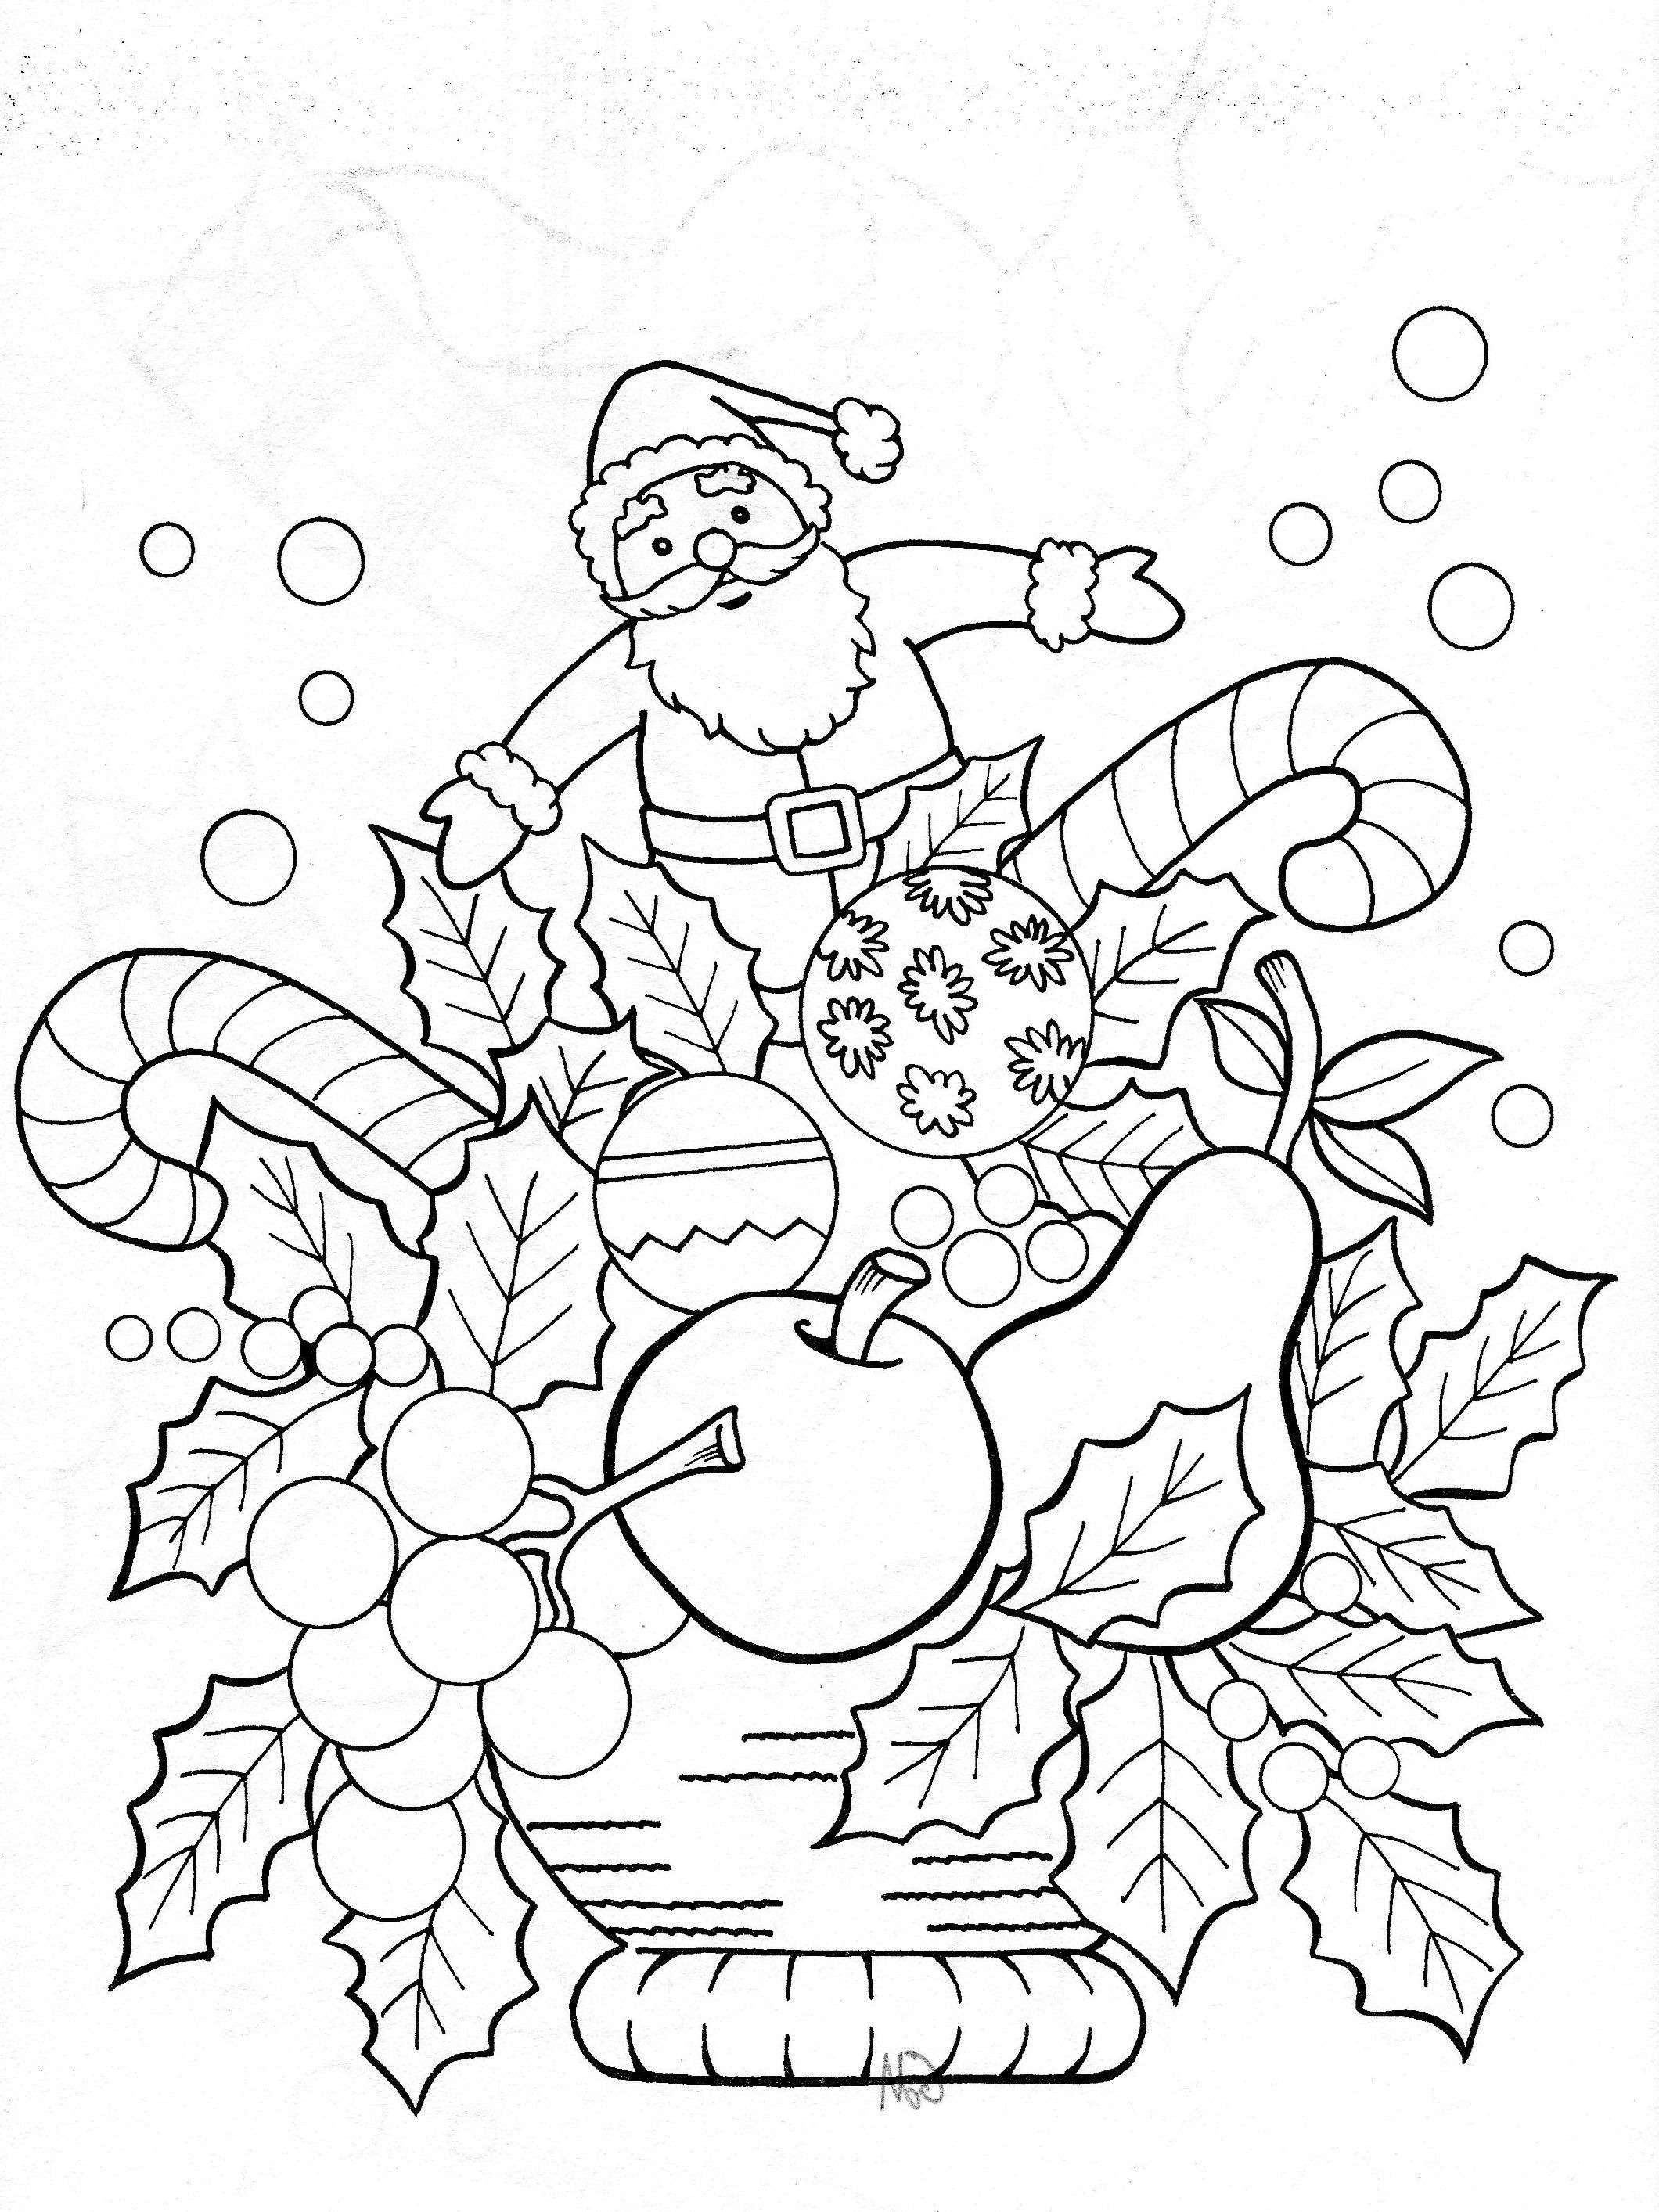 United States Coloring Page Beautiful Christmas Coloring Pages For Printable New Cool Coloring